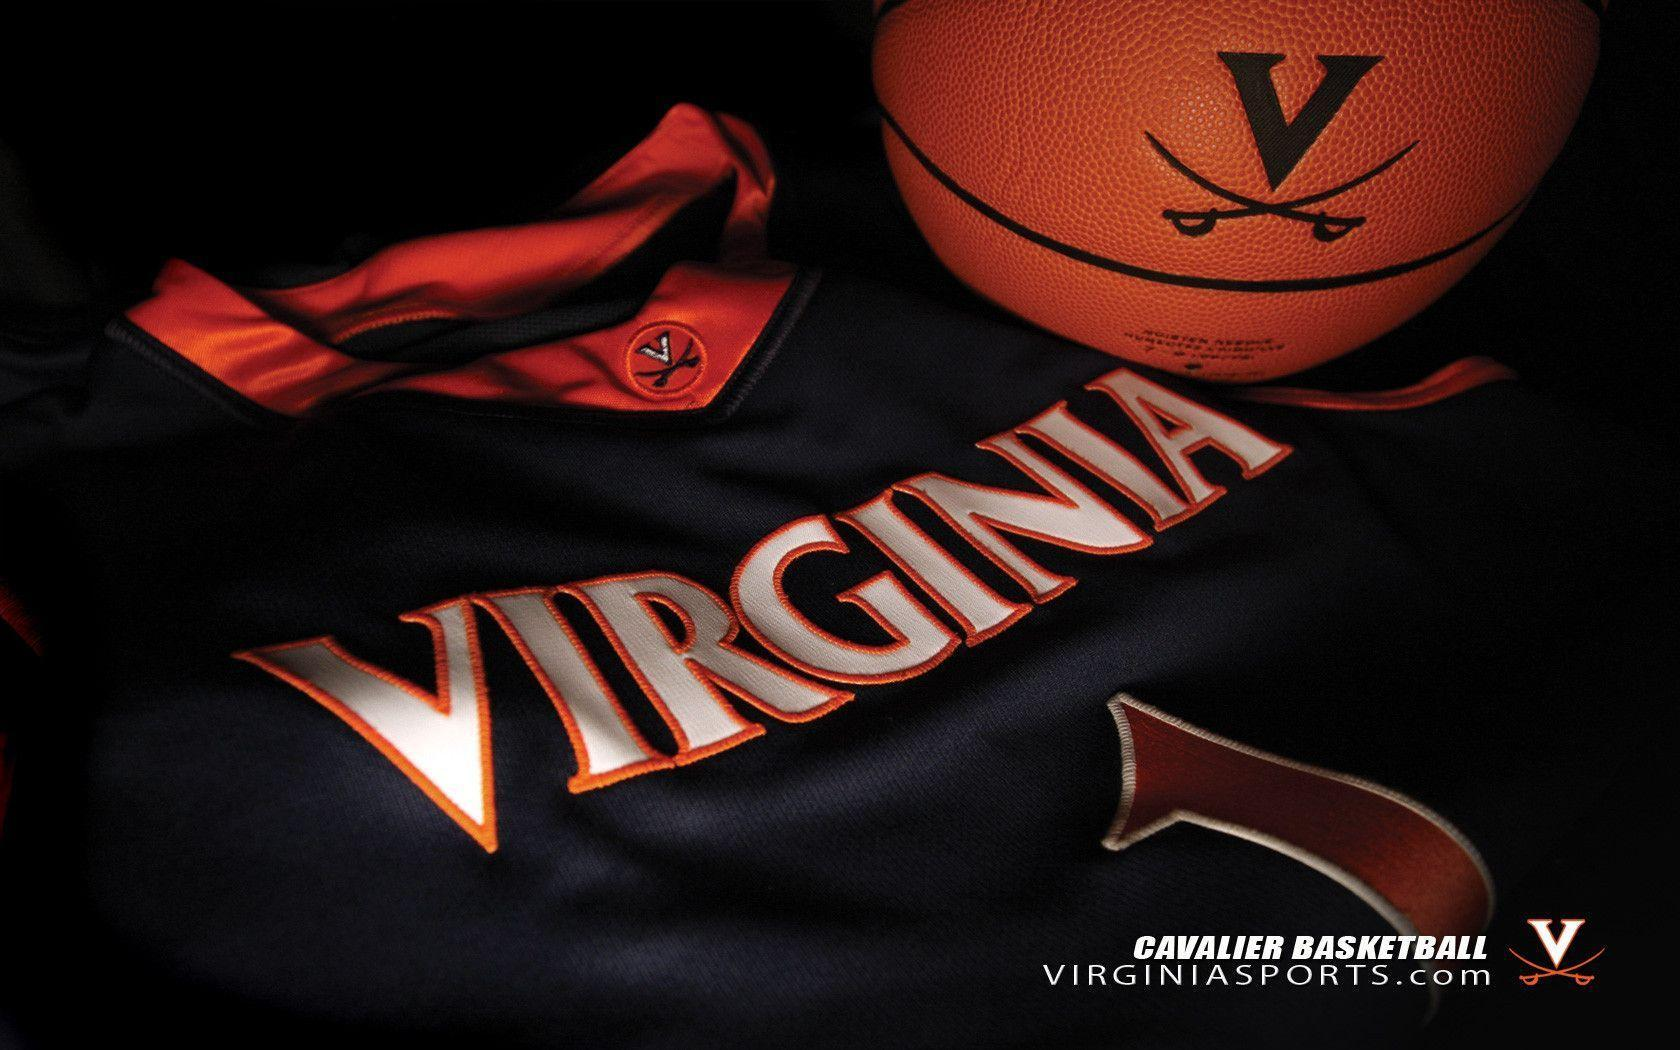 virginia cavaliers wallpaper - photo #11